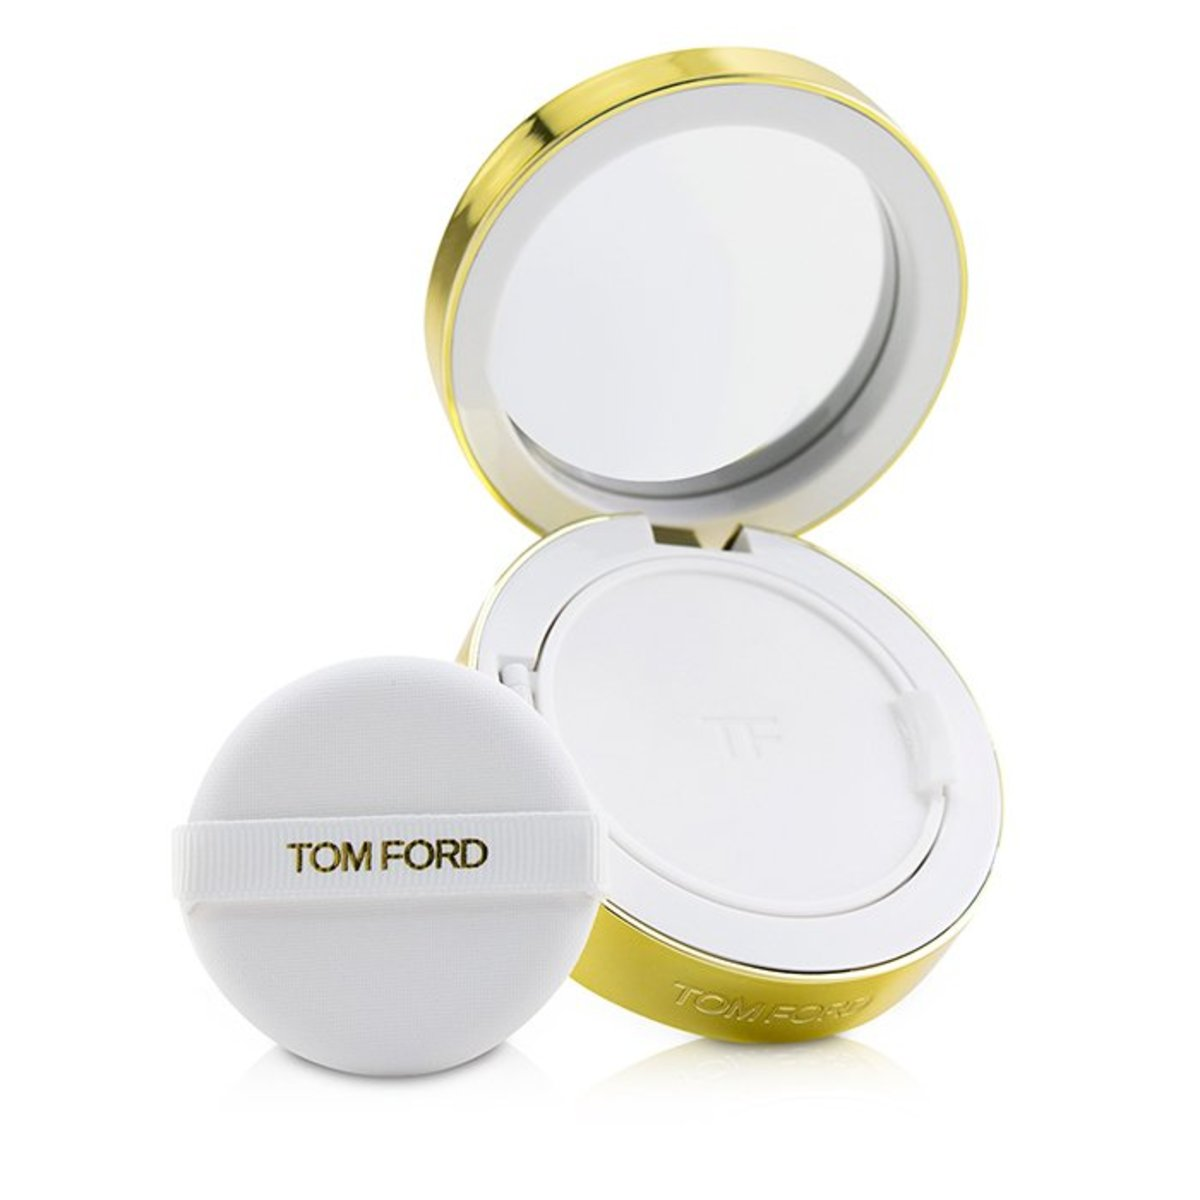 Soleil Glow Tone Up Hydrating Cushion Compact Foundation SPF40 - # 0.5 Porcelain  -[Parallel Import Product]